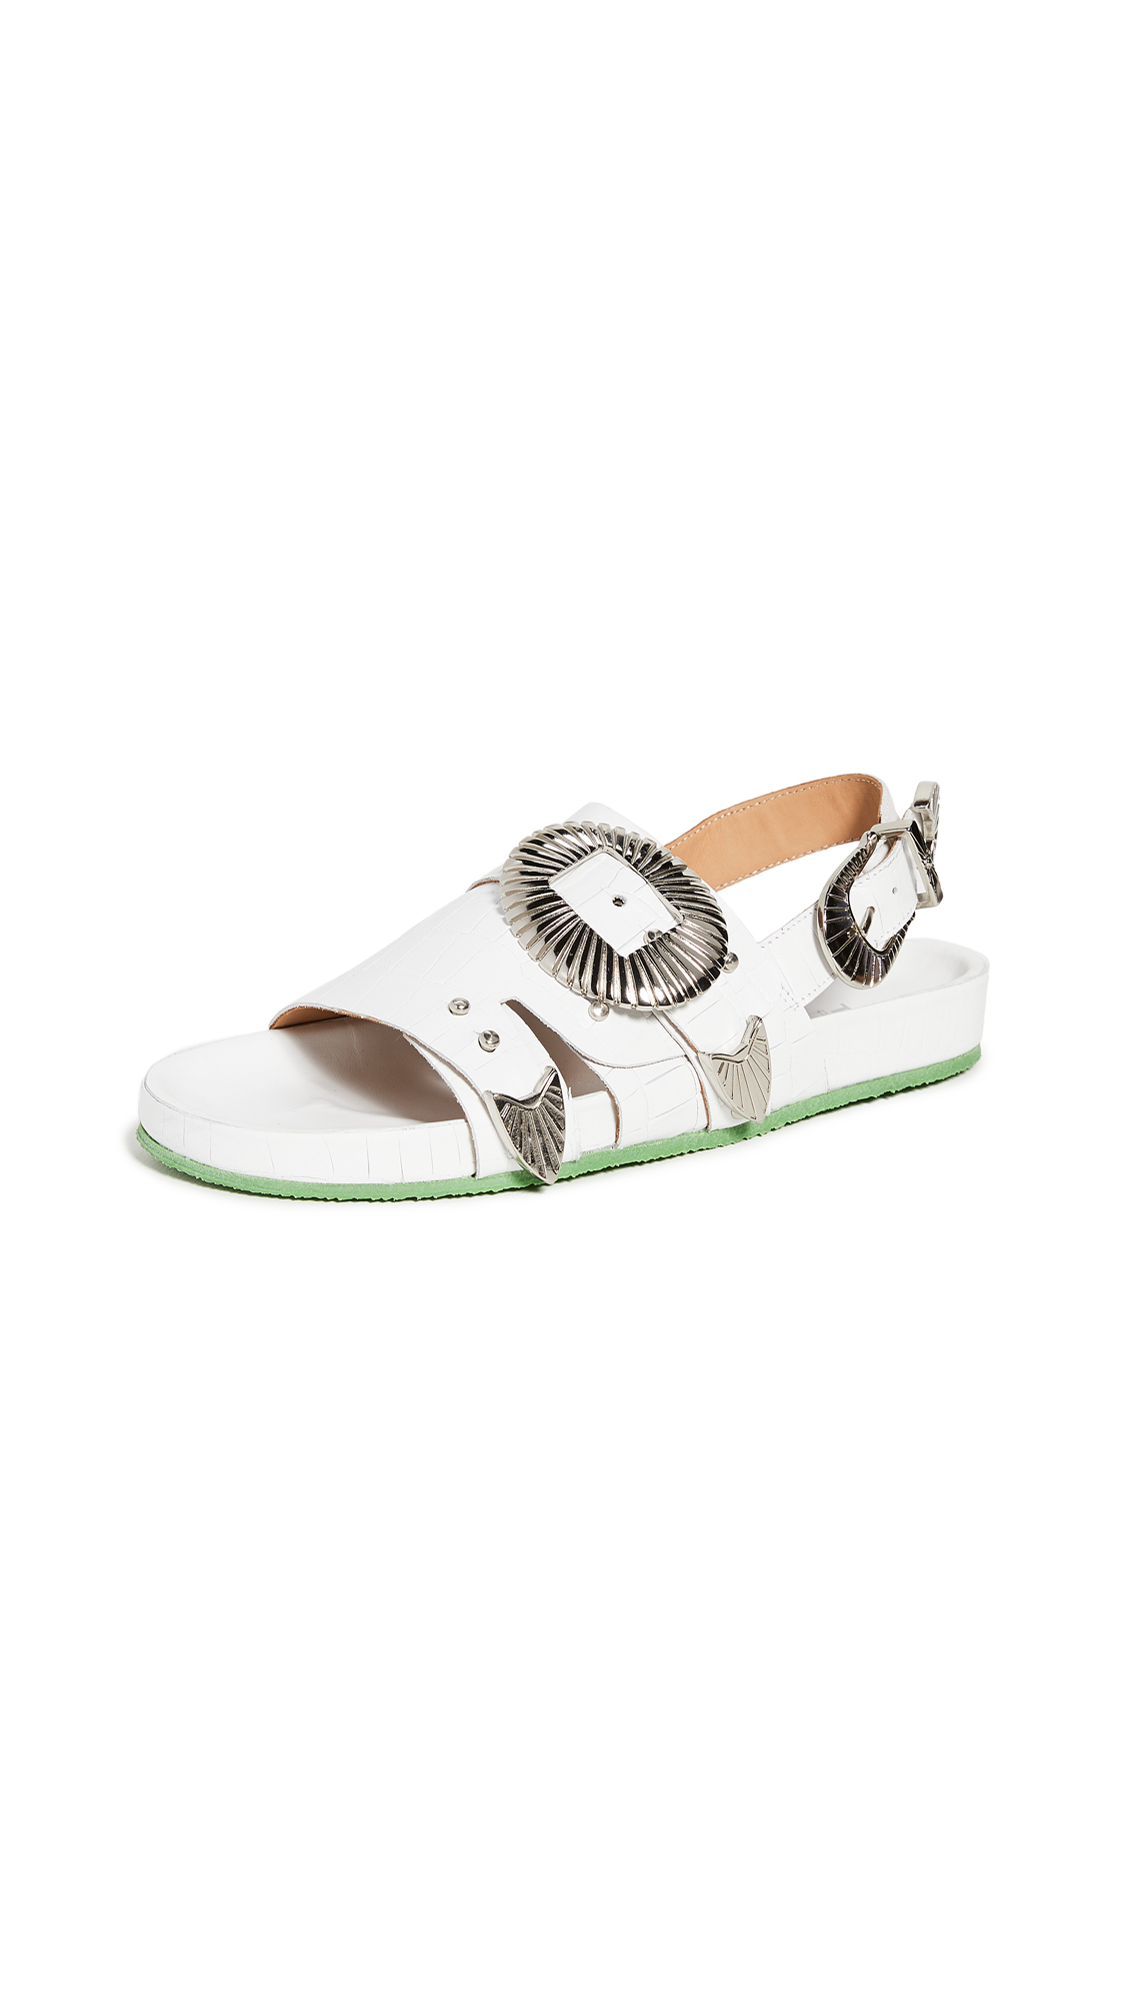 Toga Pulla Western Buckle Sandals - 40% Off Sale